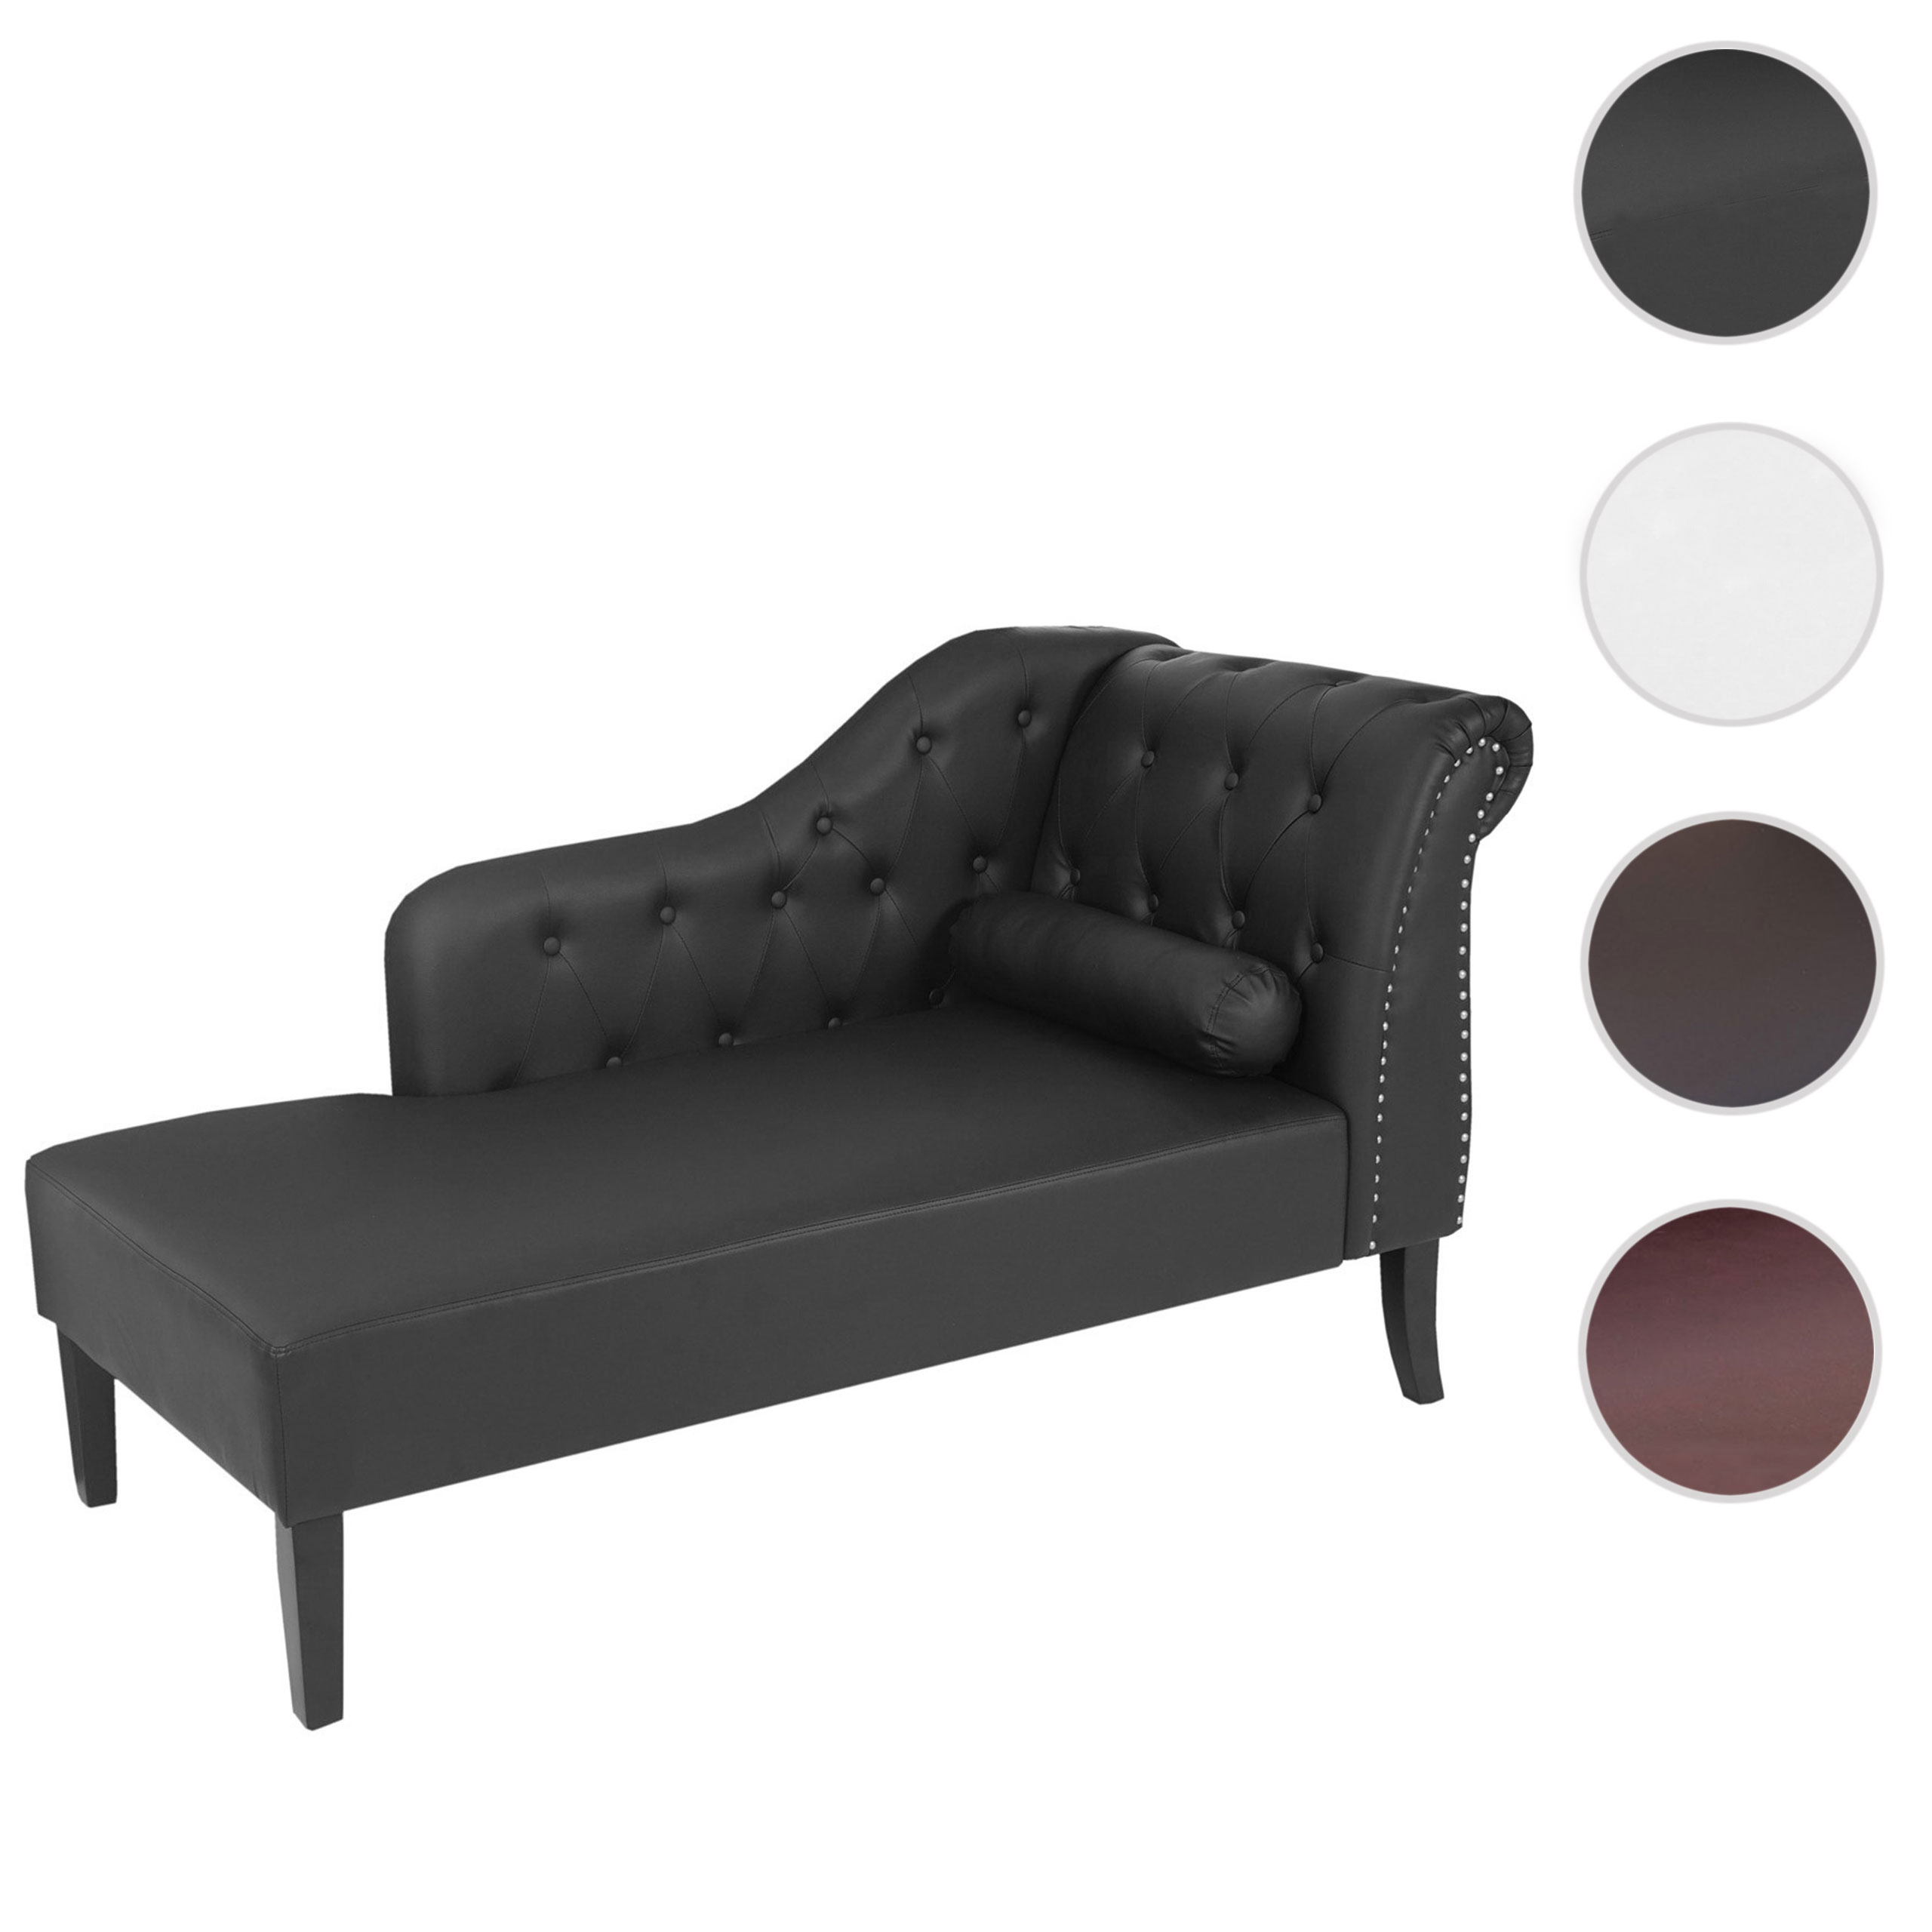 Chaiselongue Recamiere Luxus Recamiere Chesterfield Relaxliege Loungesofa Chaiselongue Kunstleder